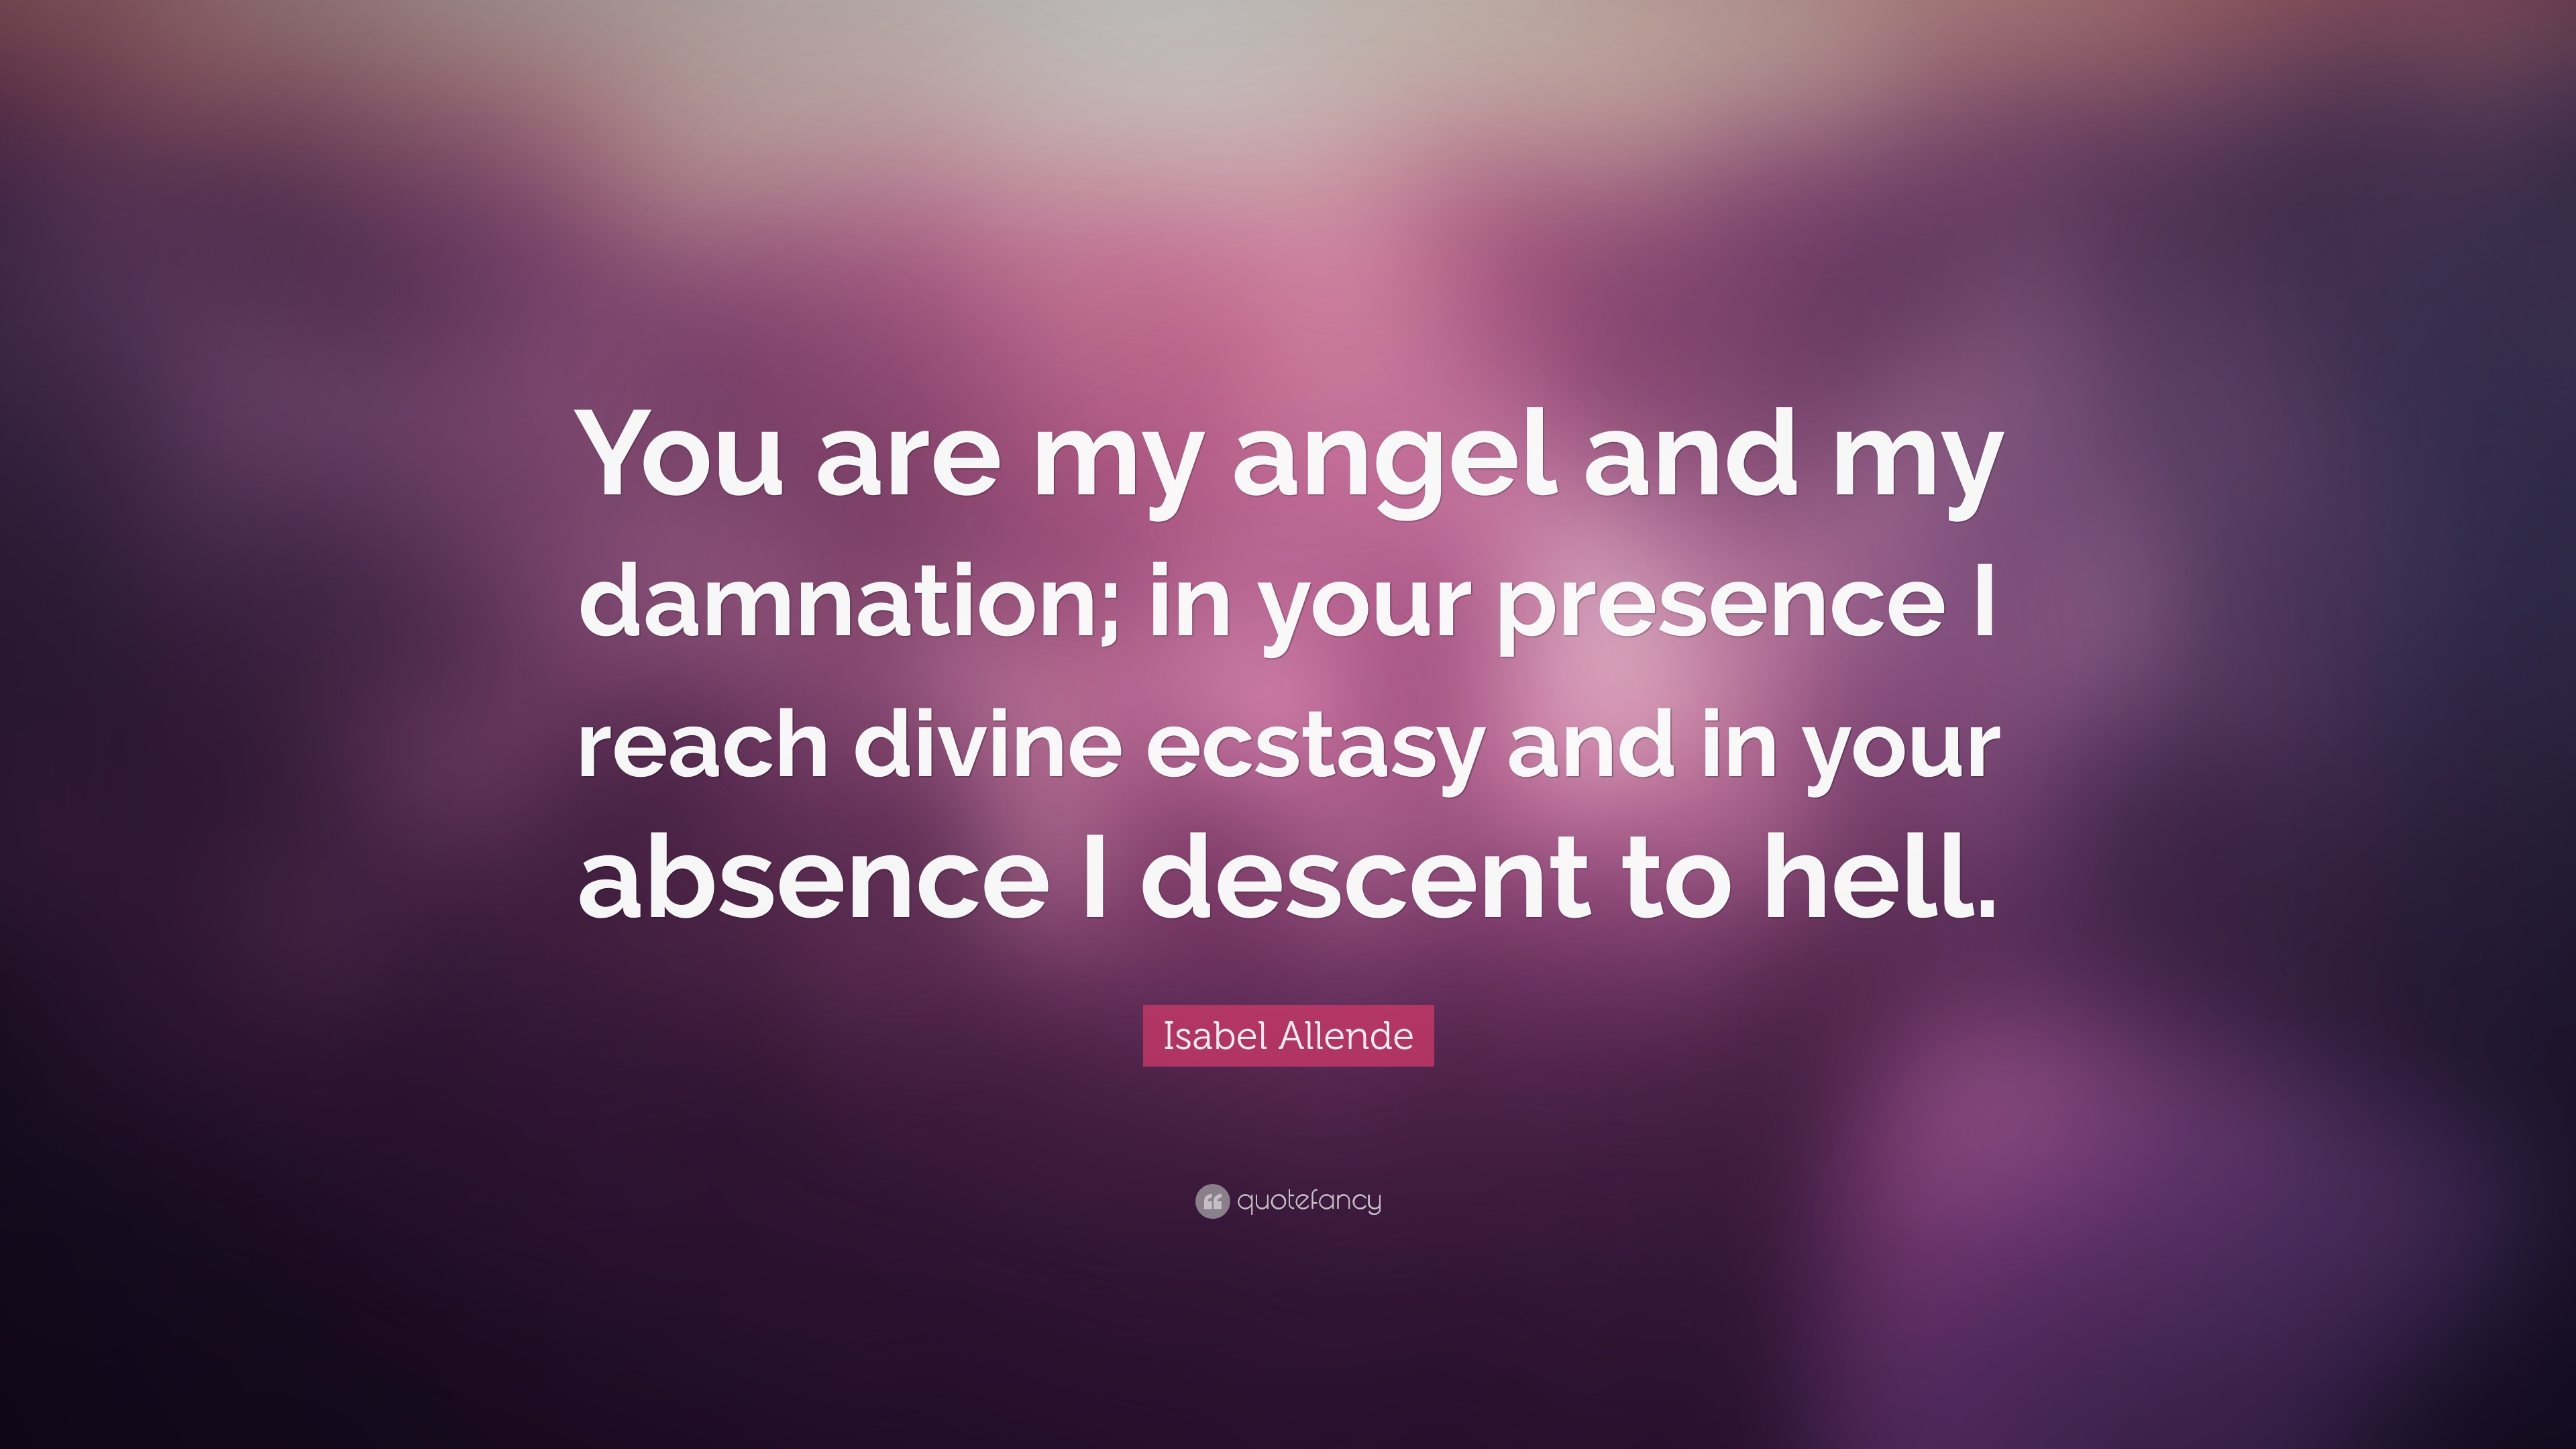 Isabel Allende Quote You Are My Angel And My Damnation In Your